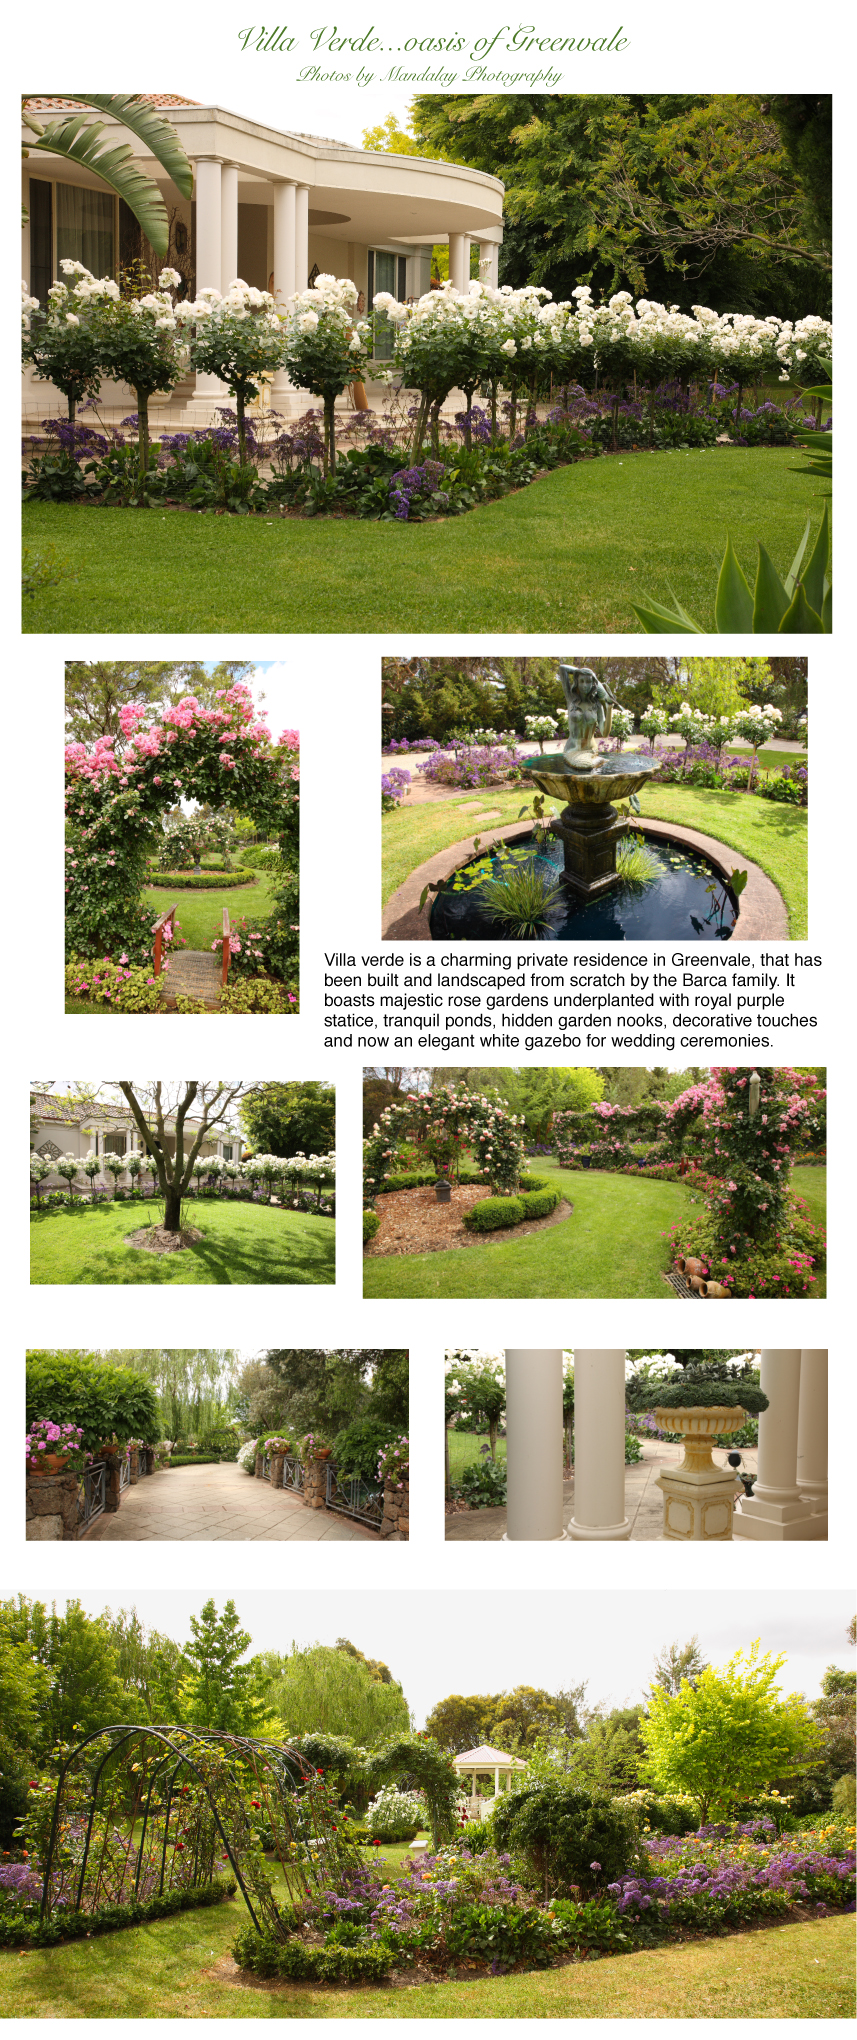 Villa Verde Gardens in Greenvale, exquisite photos by Mandalay Photography